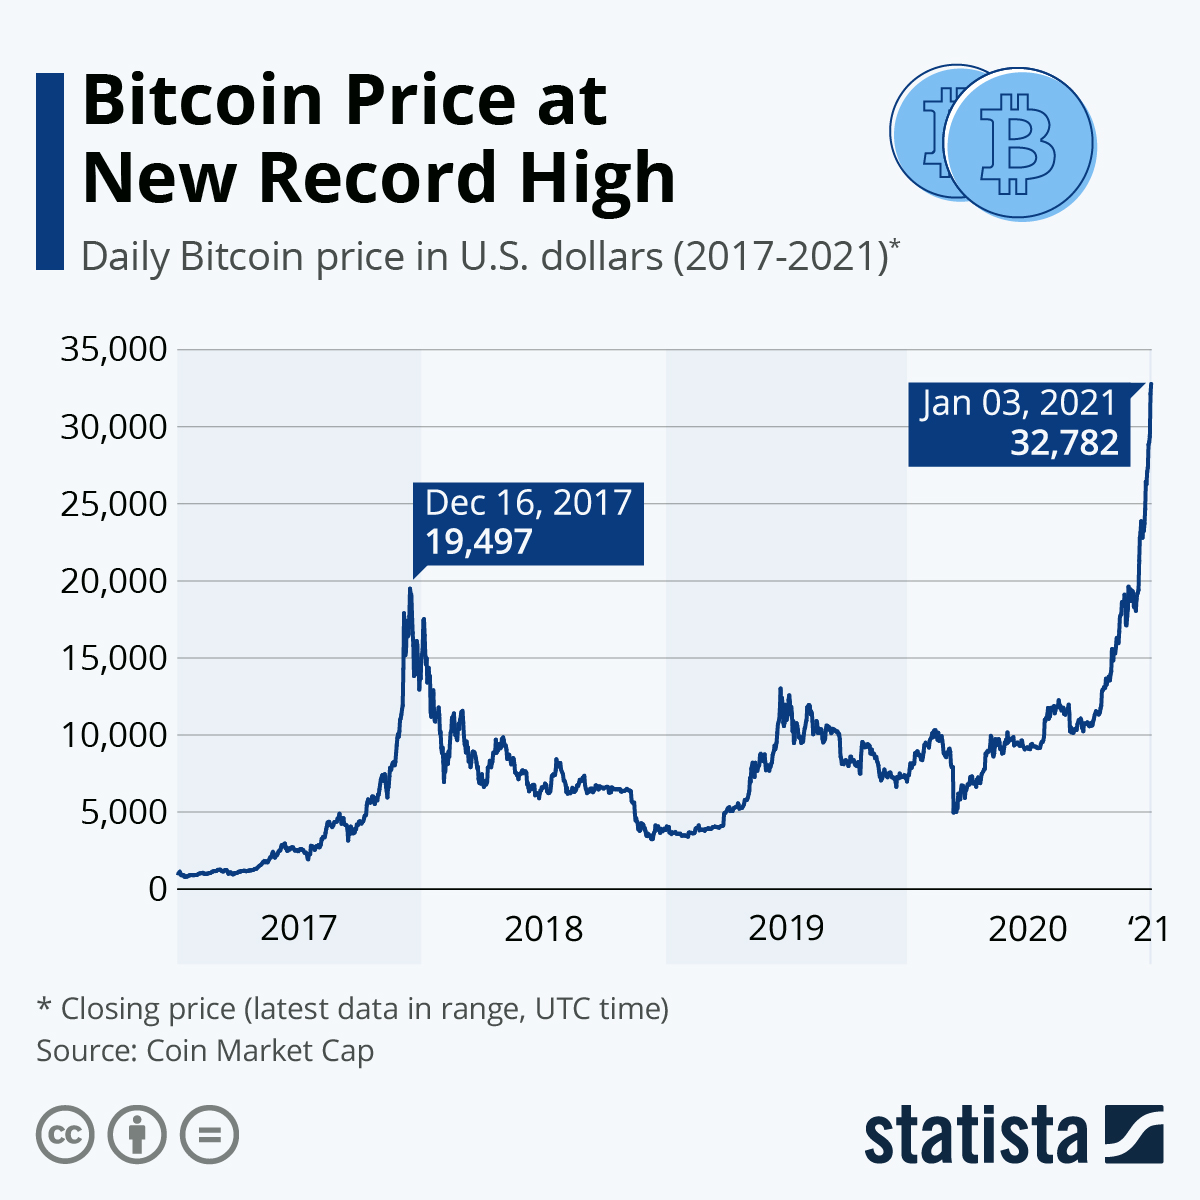 Is Cryptocurrency Good Investment?